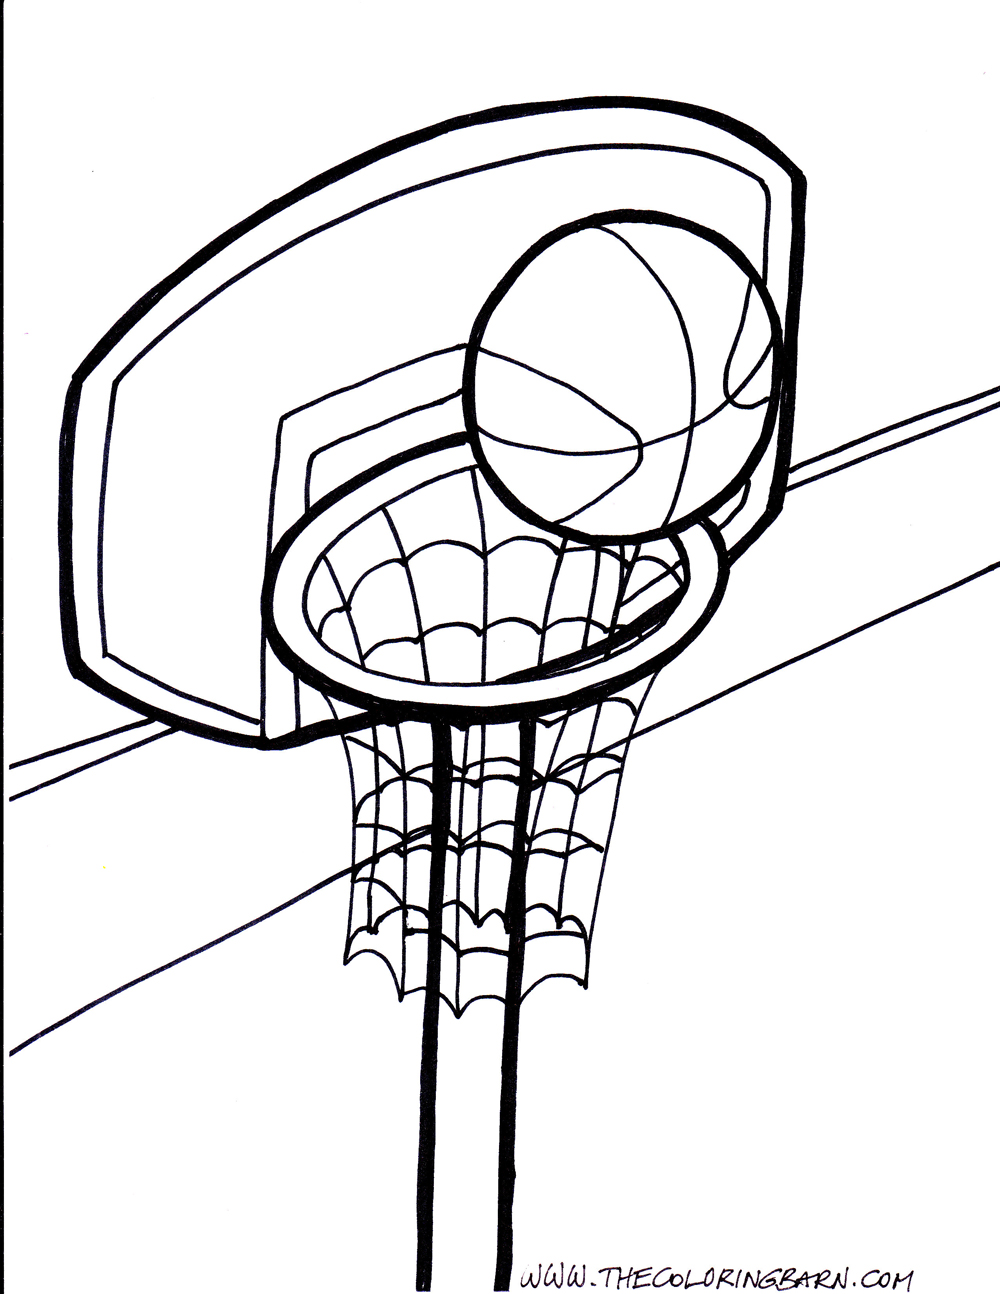 how to draw a basketball net in a basketball ball